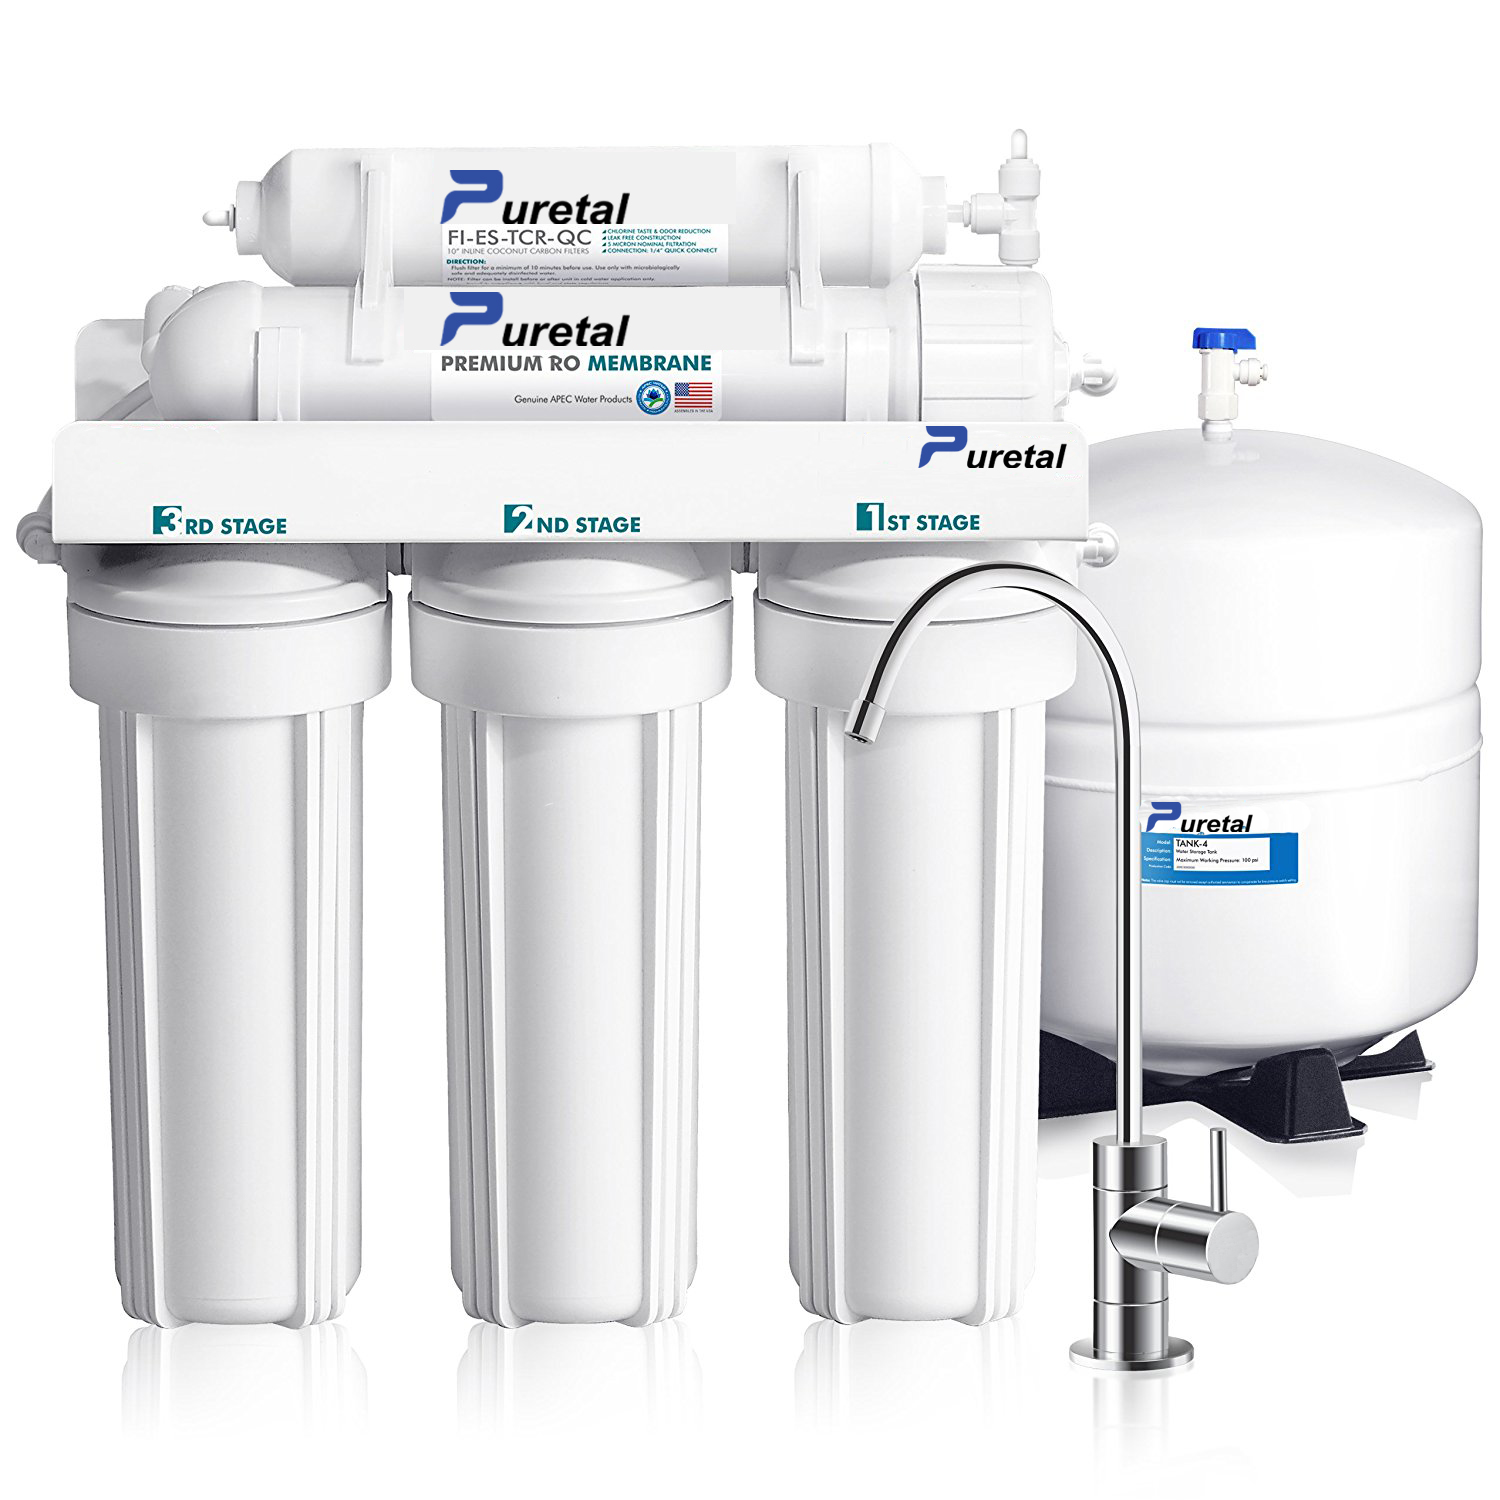 7 stage omgekeerde osmose systeem aqua gratis alkaline water filter machine